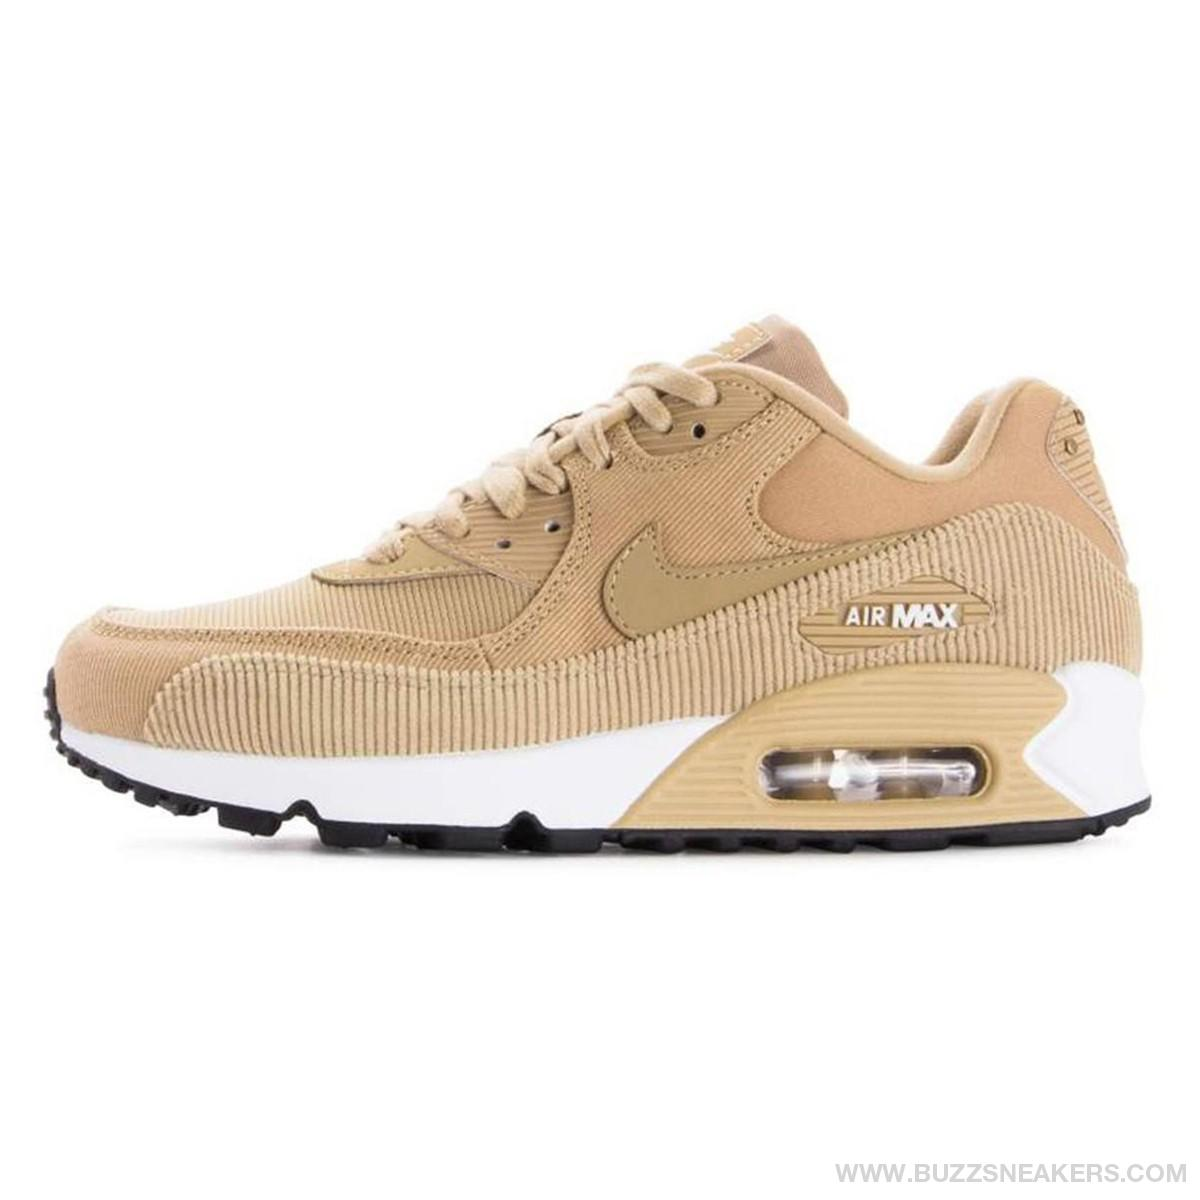 WOMEN'S NIKE AIR MAX 90 LEATHER SHOE Sport & BonusSport